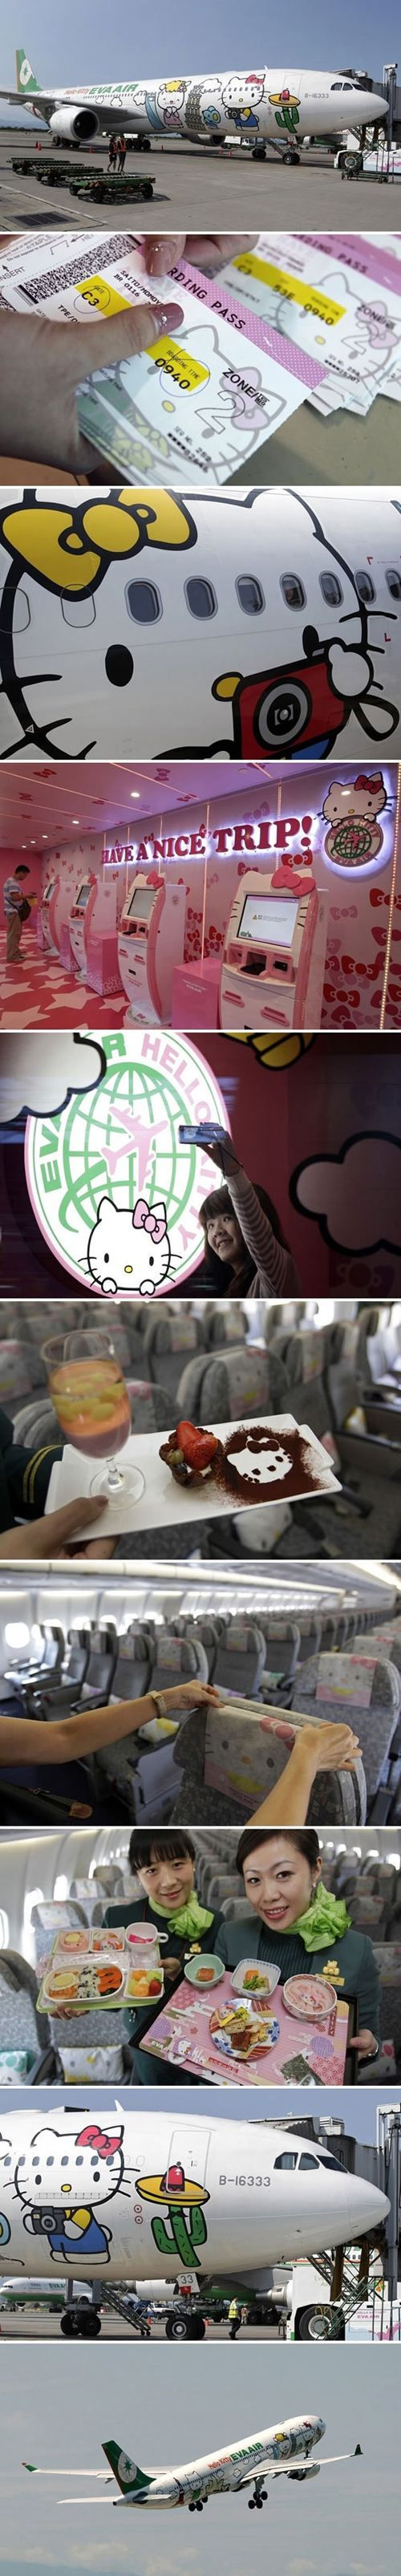 Sadly my best friend doesn't have a pinterest so she won't see this til I show it to her.  Anyway this is the flight for me and her because we both are such little kids when it comes to certain things. Hello Kitty Love <3